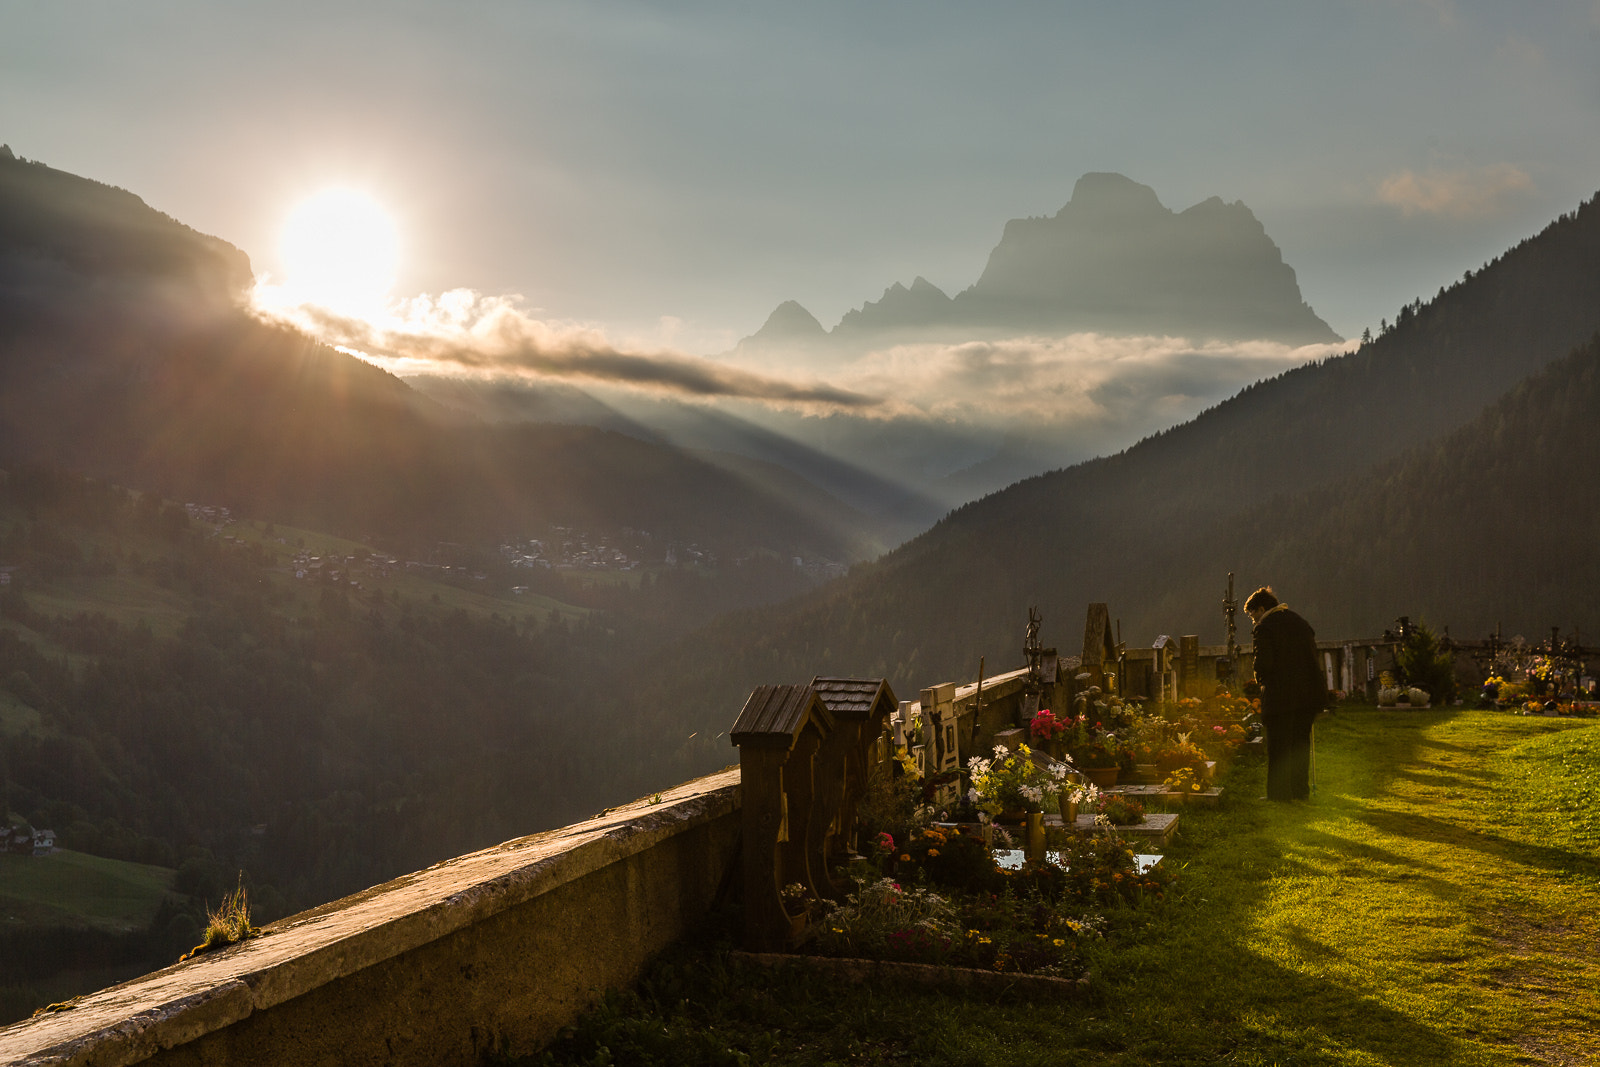 Photograph Early morning visit to the grave yard at Colle Santa Lucia by Hans Kruse on 500px